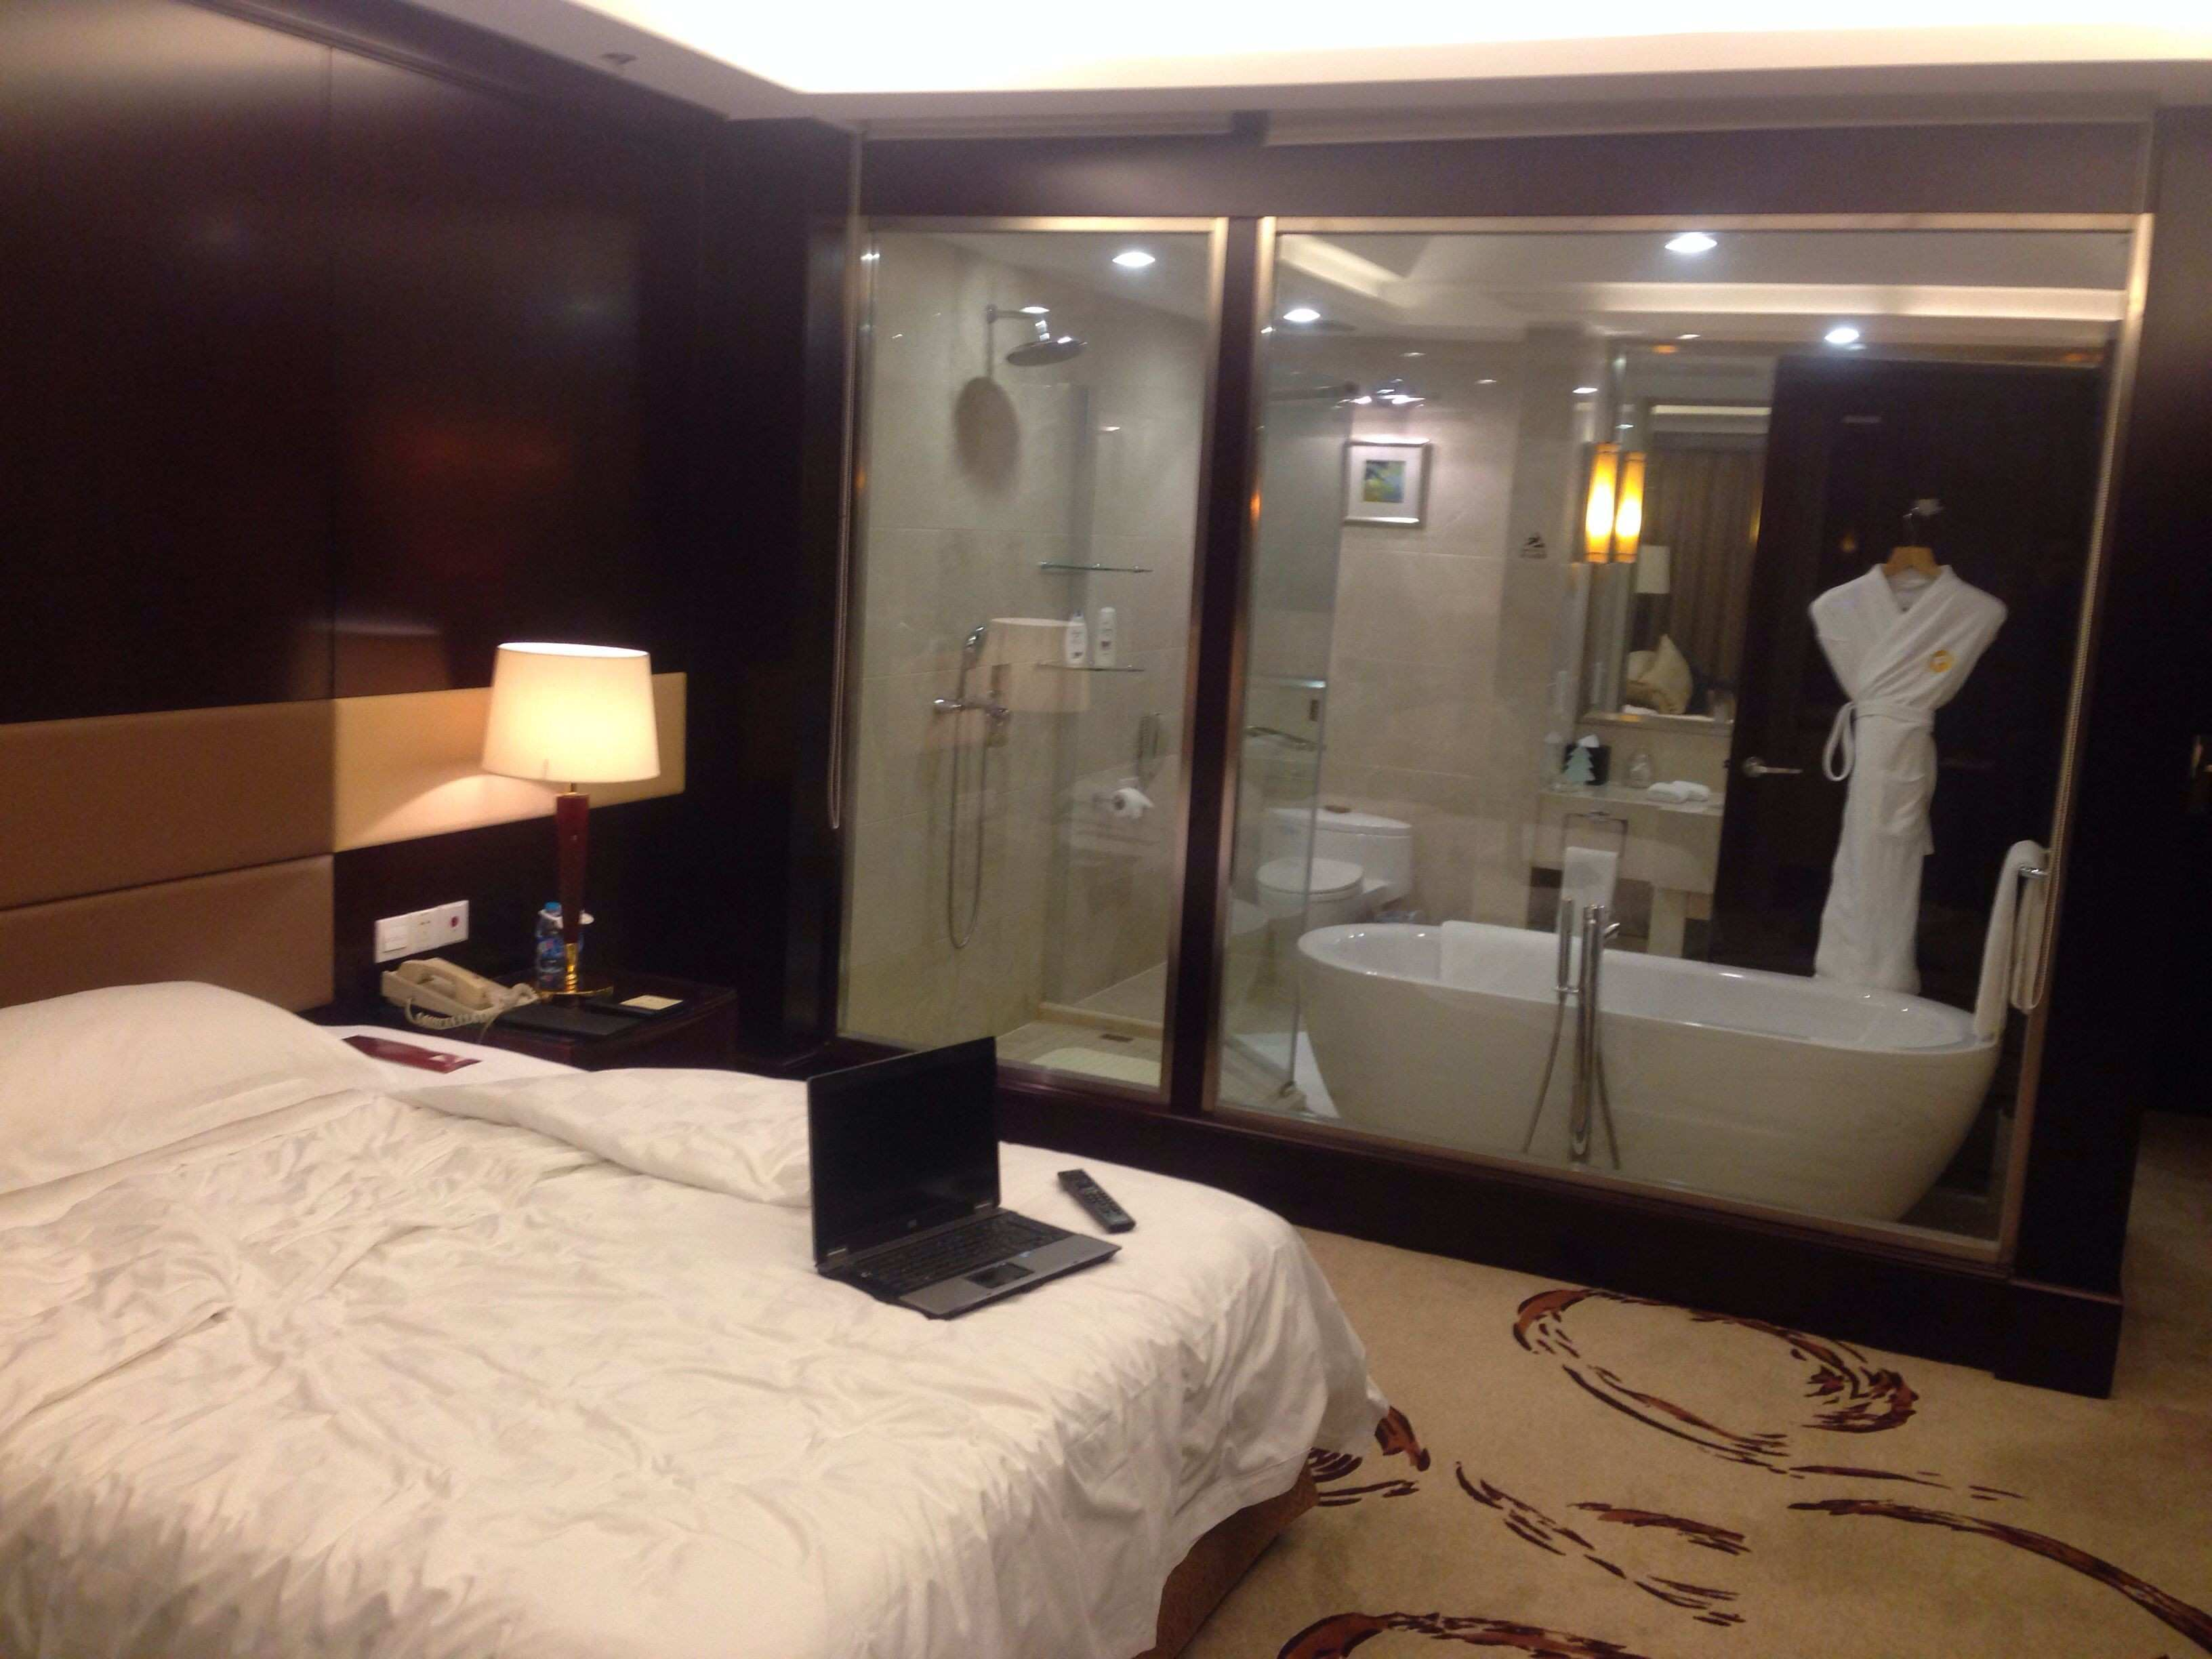 My hotel room bathroom has a glass wall and you can see inside